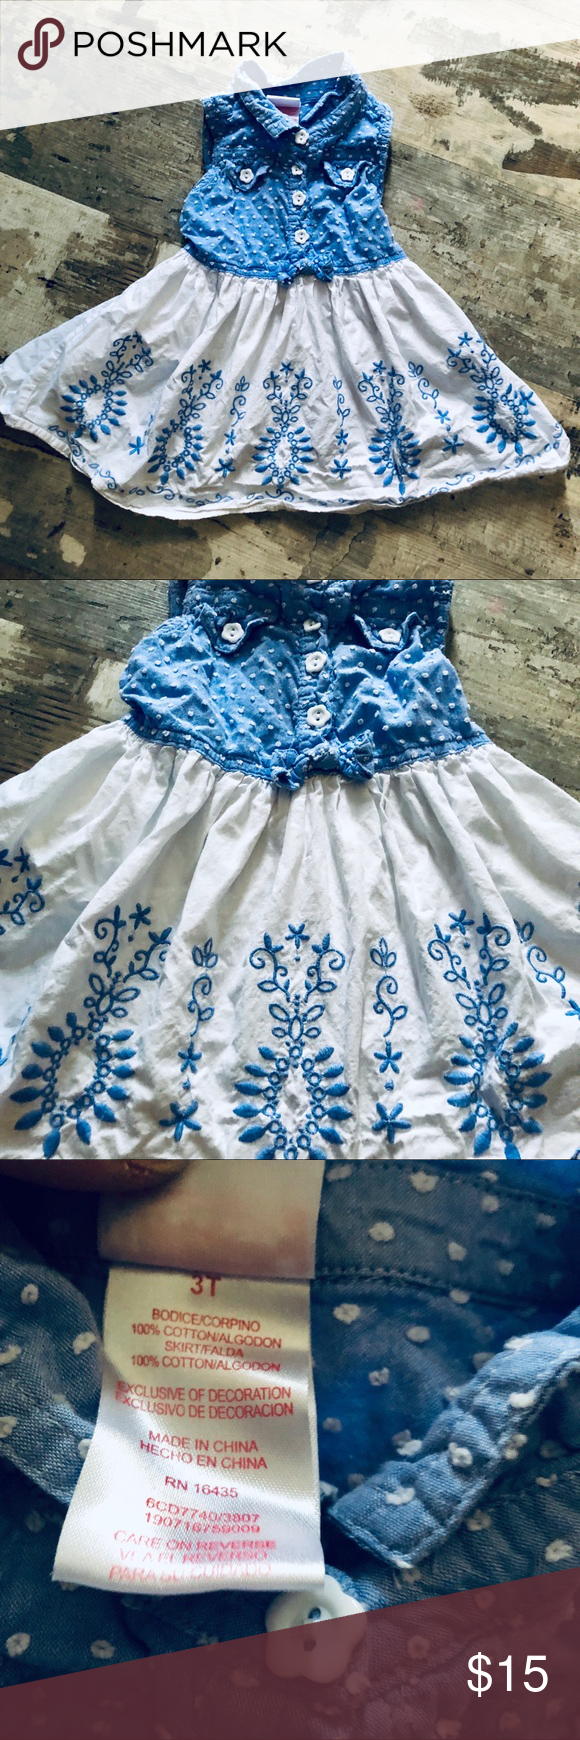 Gorgeous Embroidered Toddler Girls Dress 3t Toddler Girl Dresses 3t Dress White Embroidered Dress [ 1740 x 580 Pixel ]